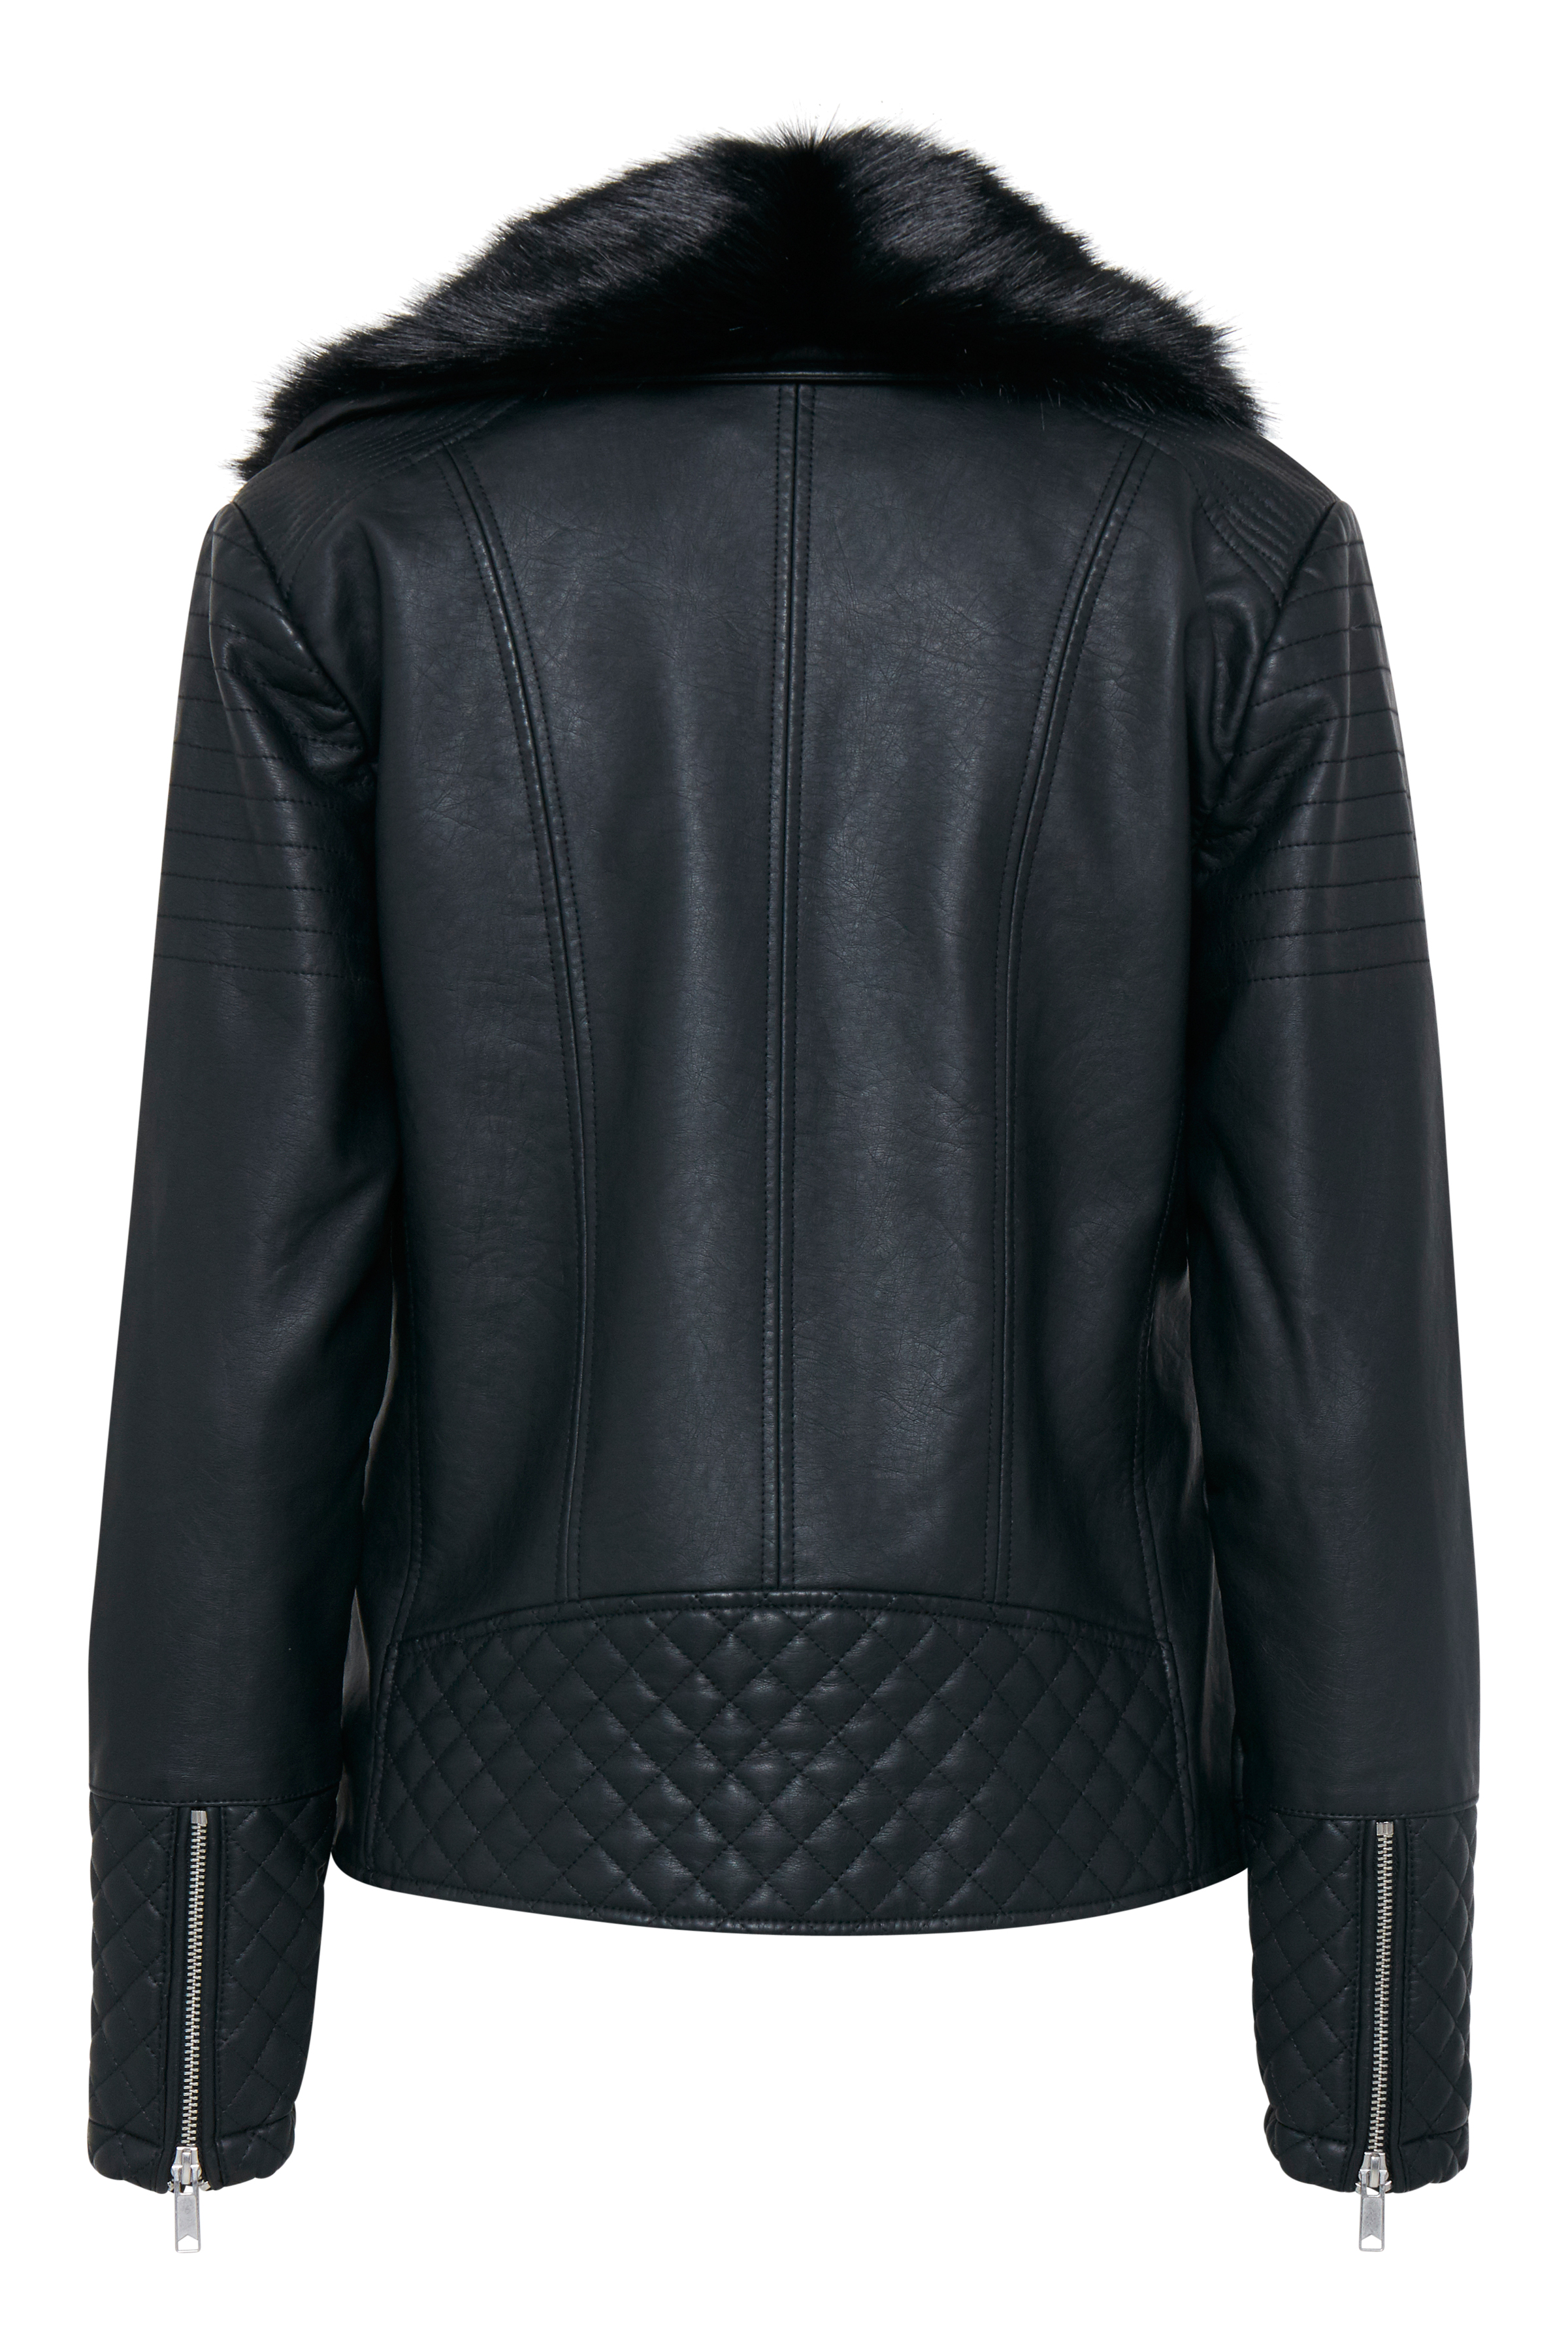 Black Jacket from b.young – Buy Black Jacket from size 34-42 here